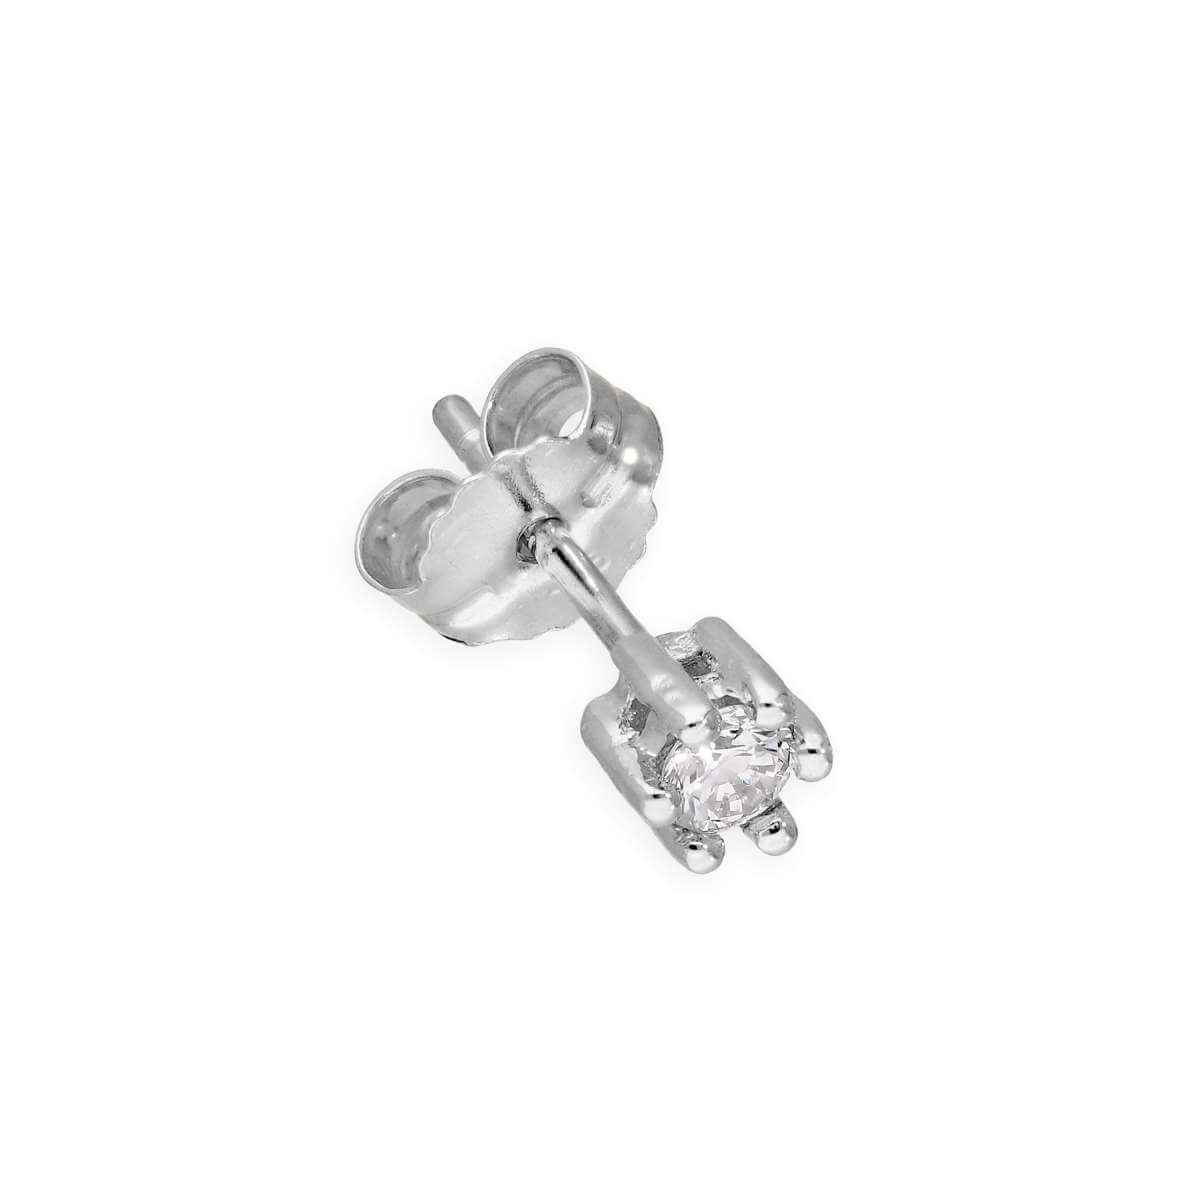 9ct White Gold & 0.05ct Diamond Single Stud Earring